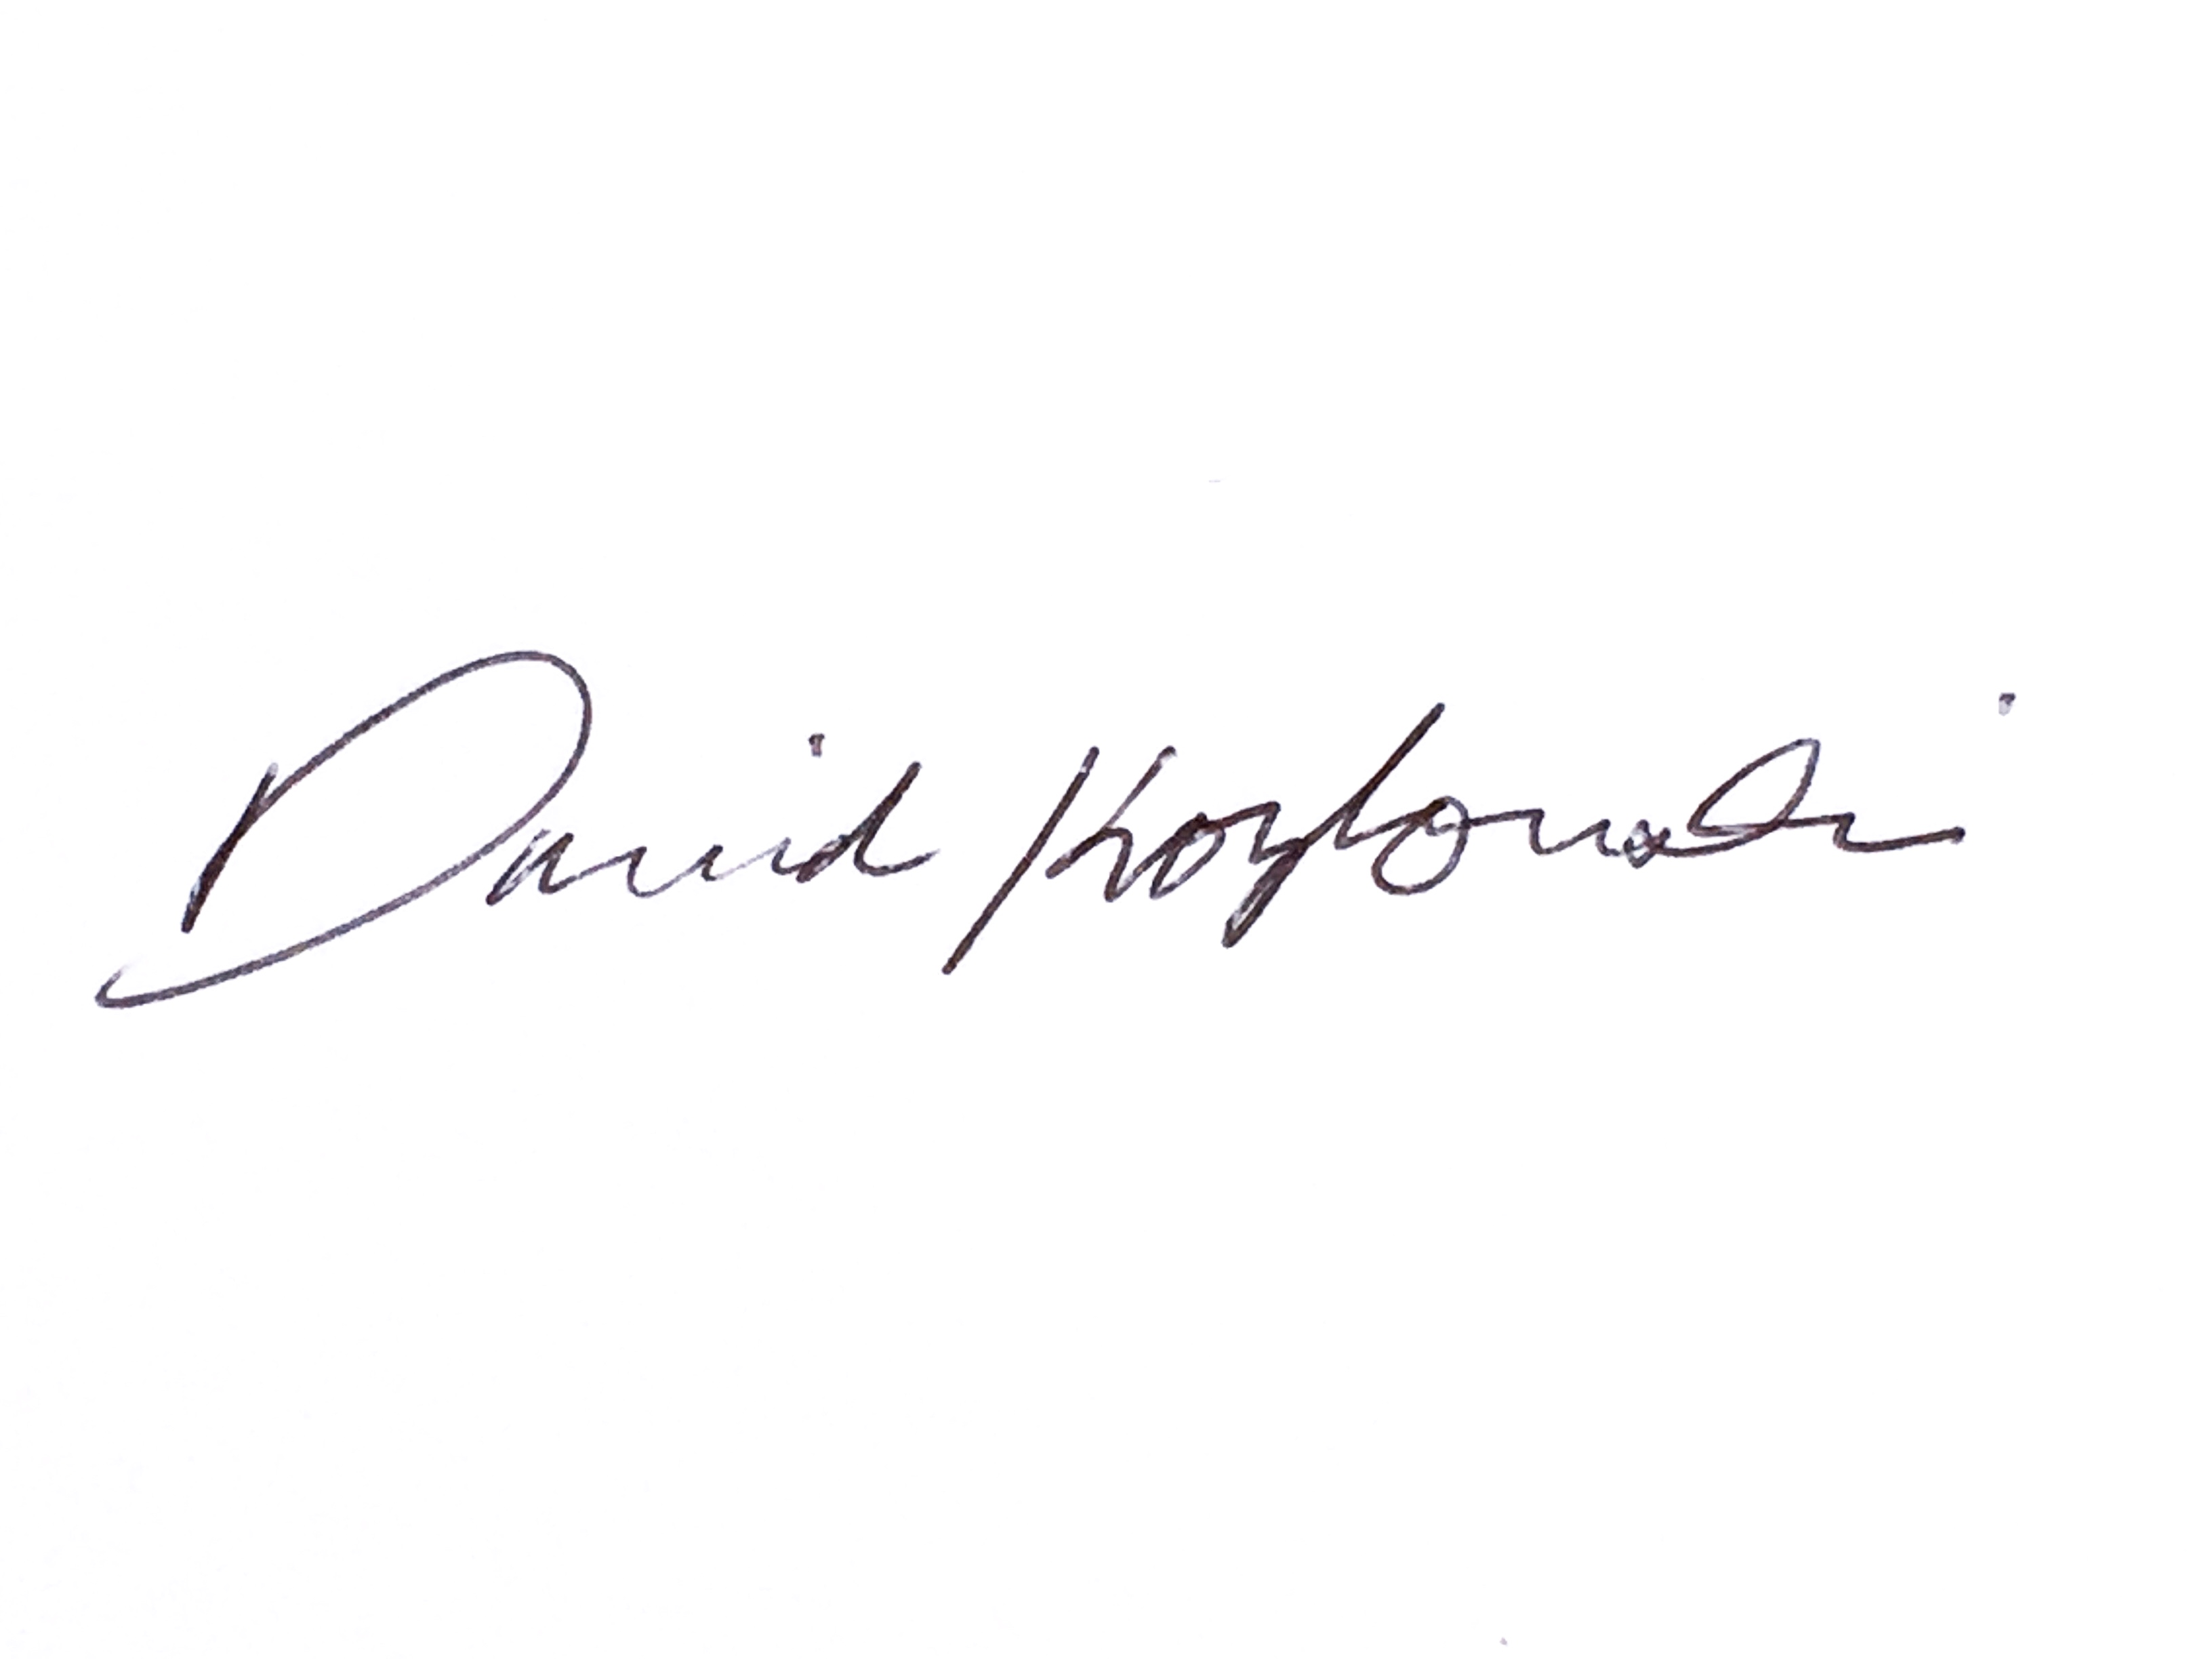 David Kozlowski Signature